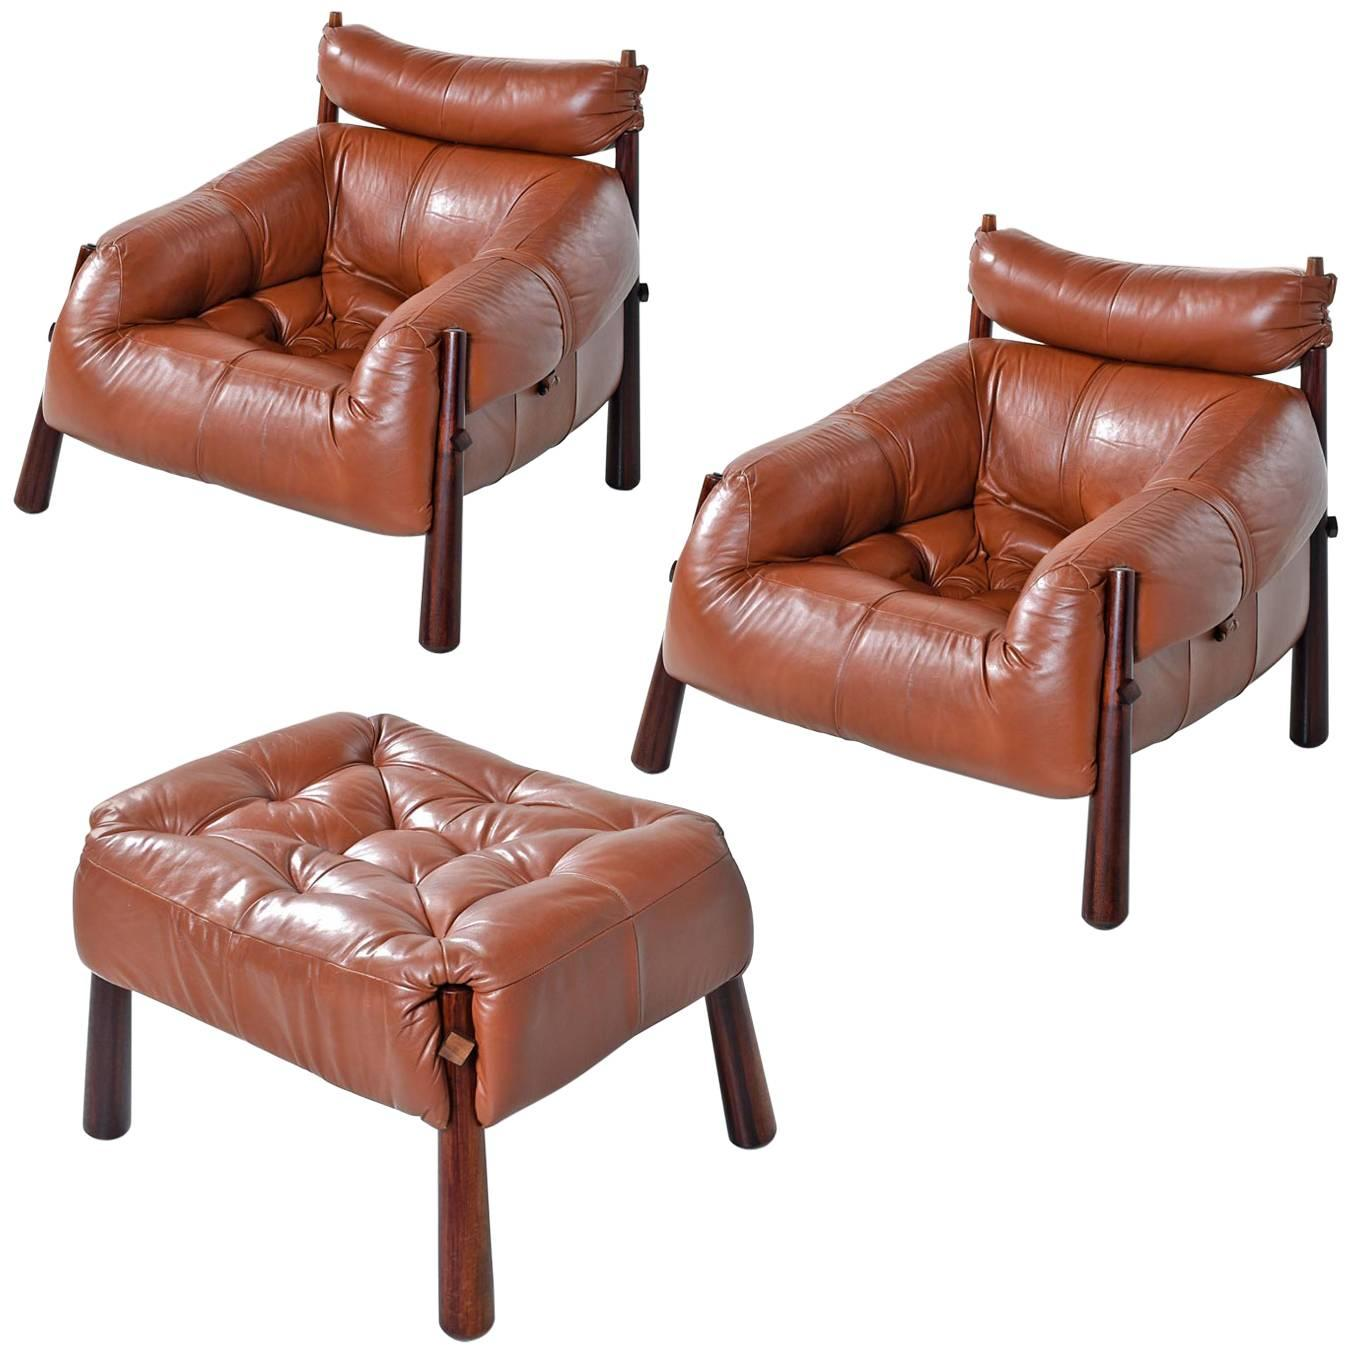 Percival Lafer MP-81 Brazilian Rosewood u0026 Leather Lounge Chairs and Ottoman Set  sc 1 st  1stDibs & Percival Lafer Furniture: Chairs Sofas Tables u0026 More - 125 For ...